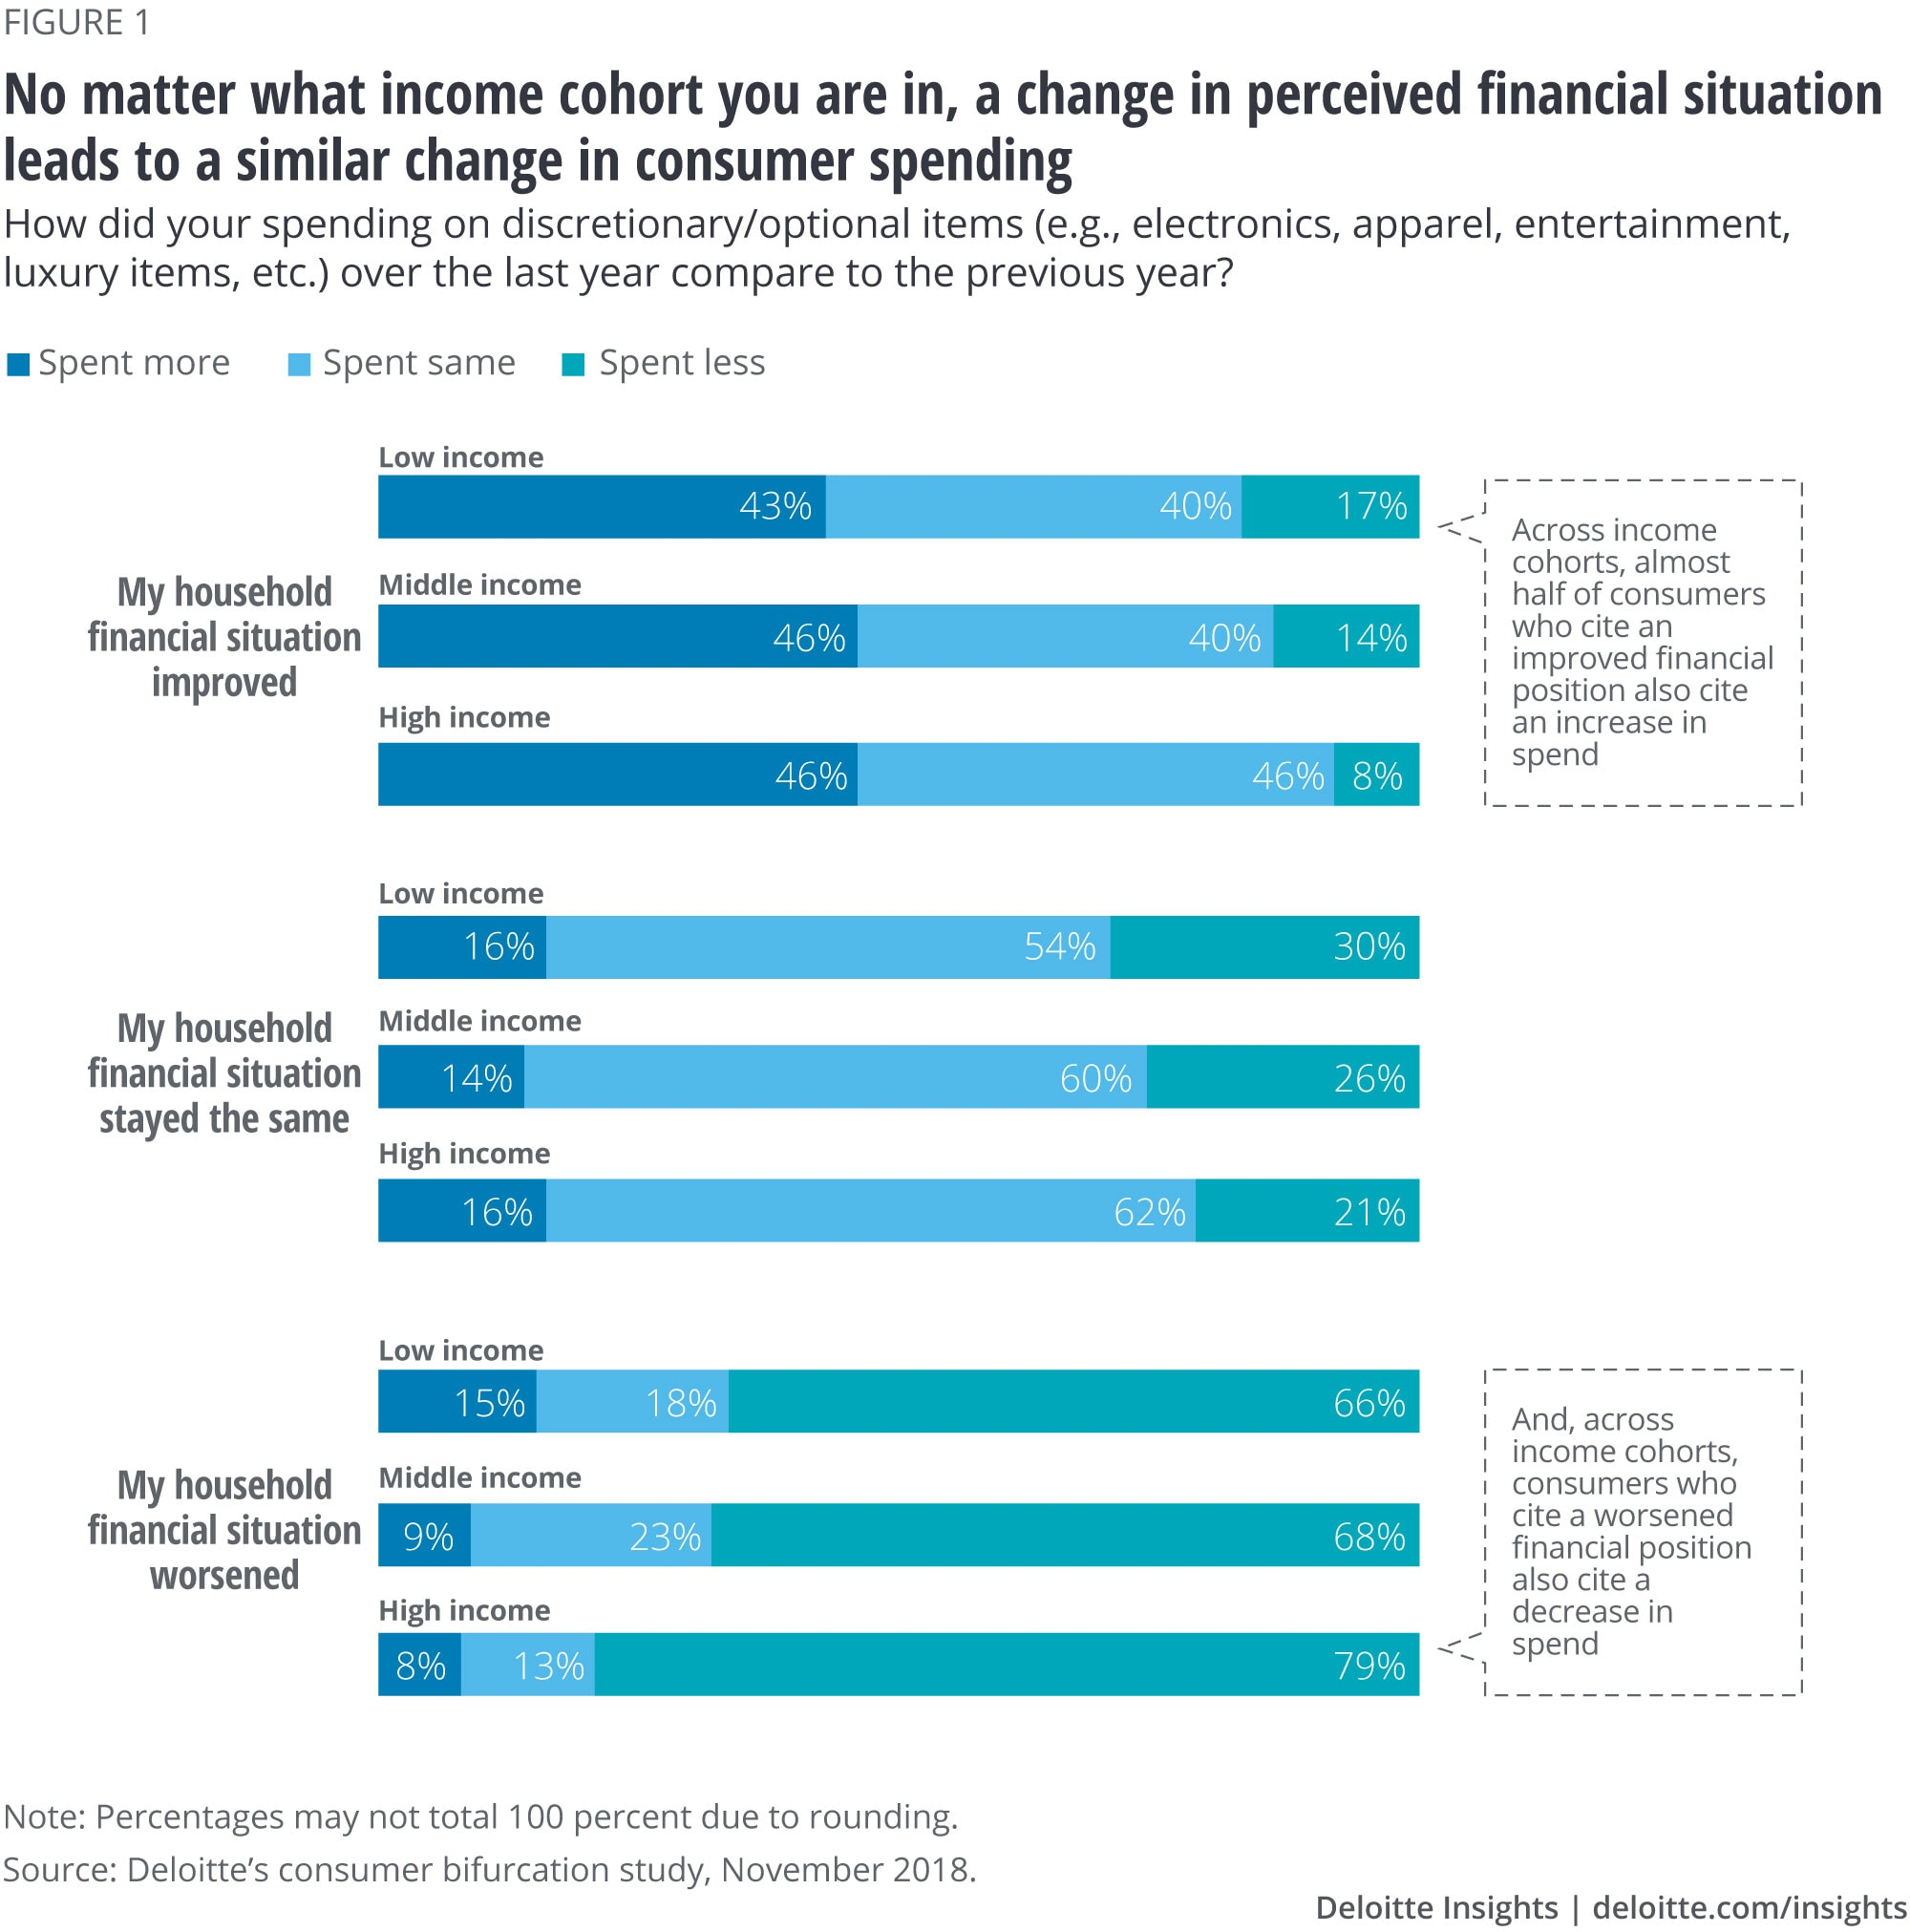 No matter what income cohort you are in, a change in perceived financial situation leads to a similar change in consumer spending